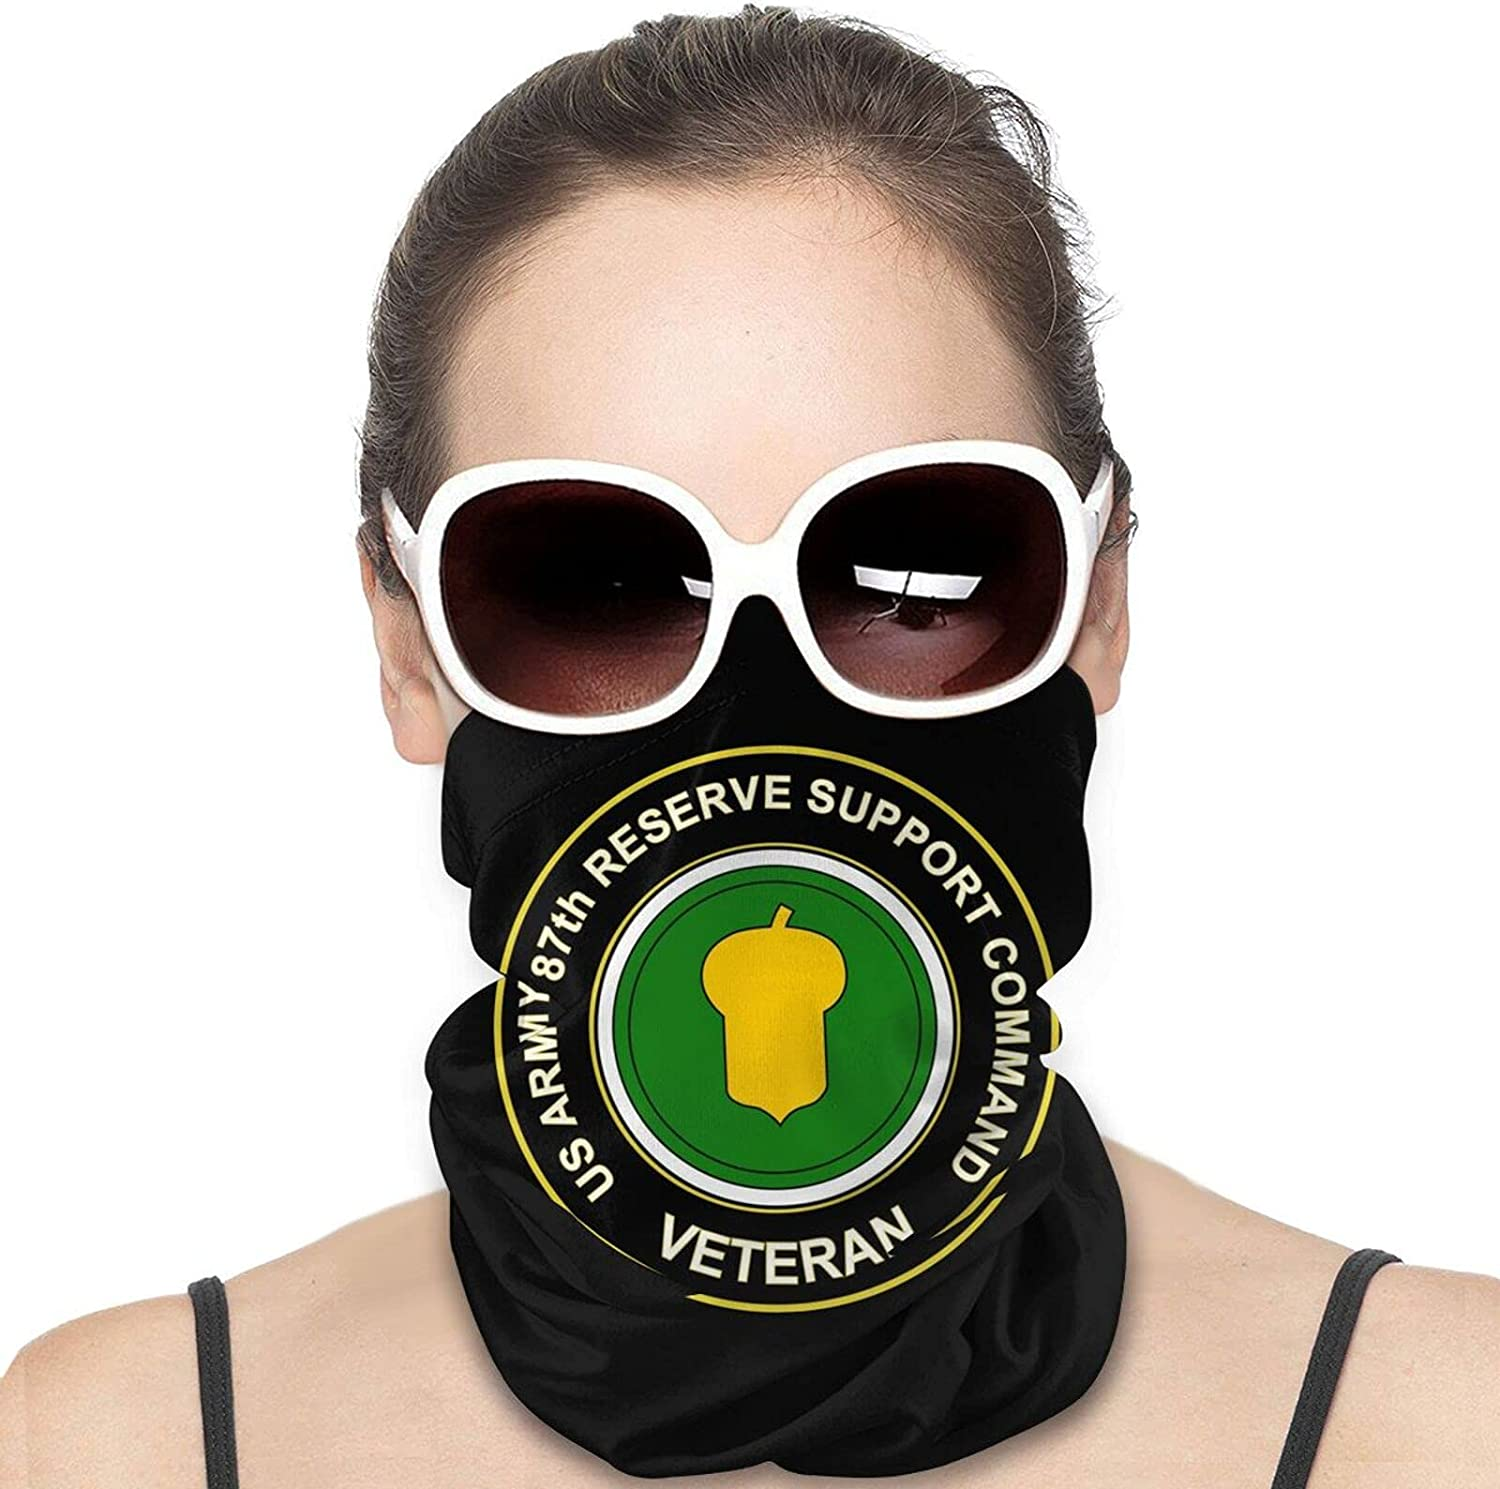 U.S. Army 87th Reserve Support Command Veteran Round Neck Gaiter Bandnas Face Cover Uv Protection Prevent bask in Ice Scarf Headbands Perfect for Motorcycle Cycling Running Festival Raves Outdoors